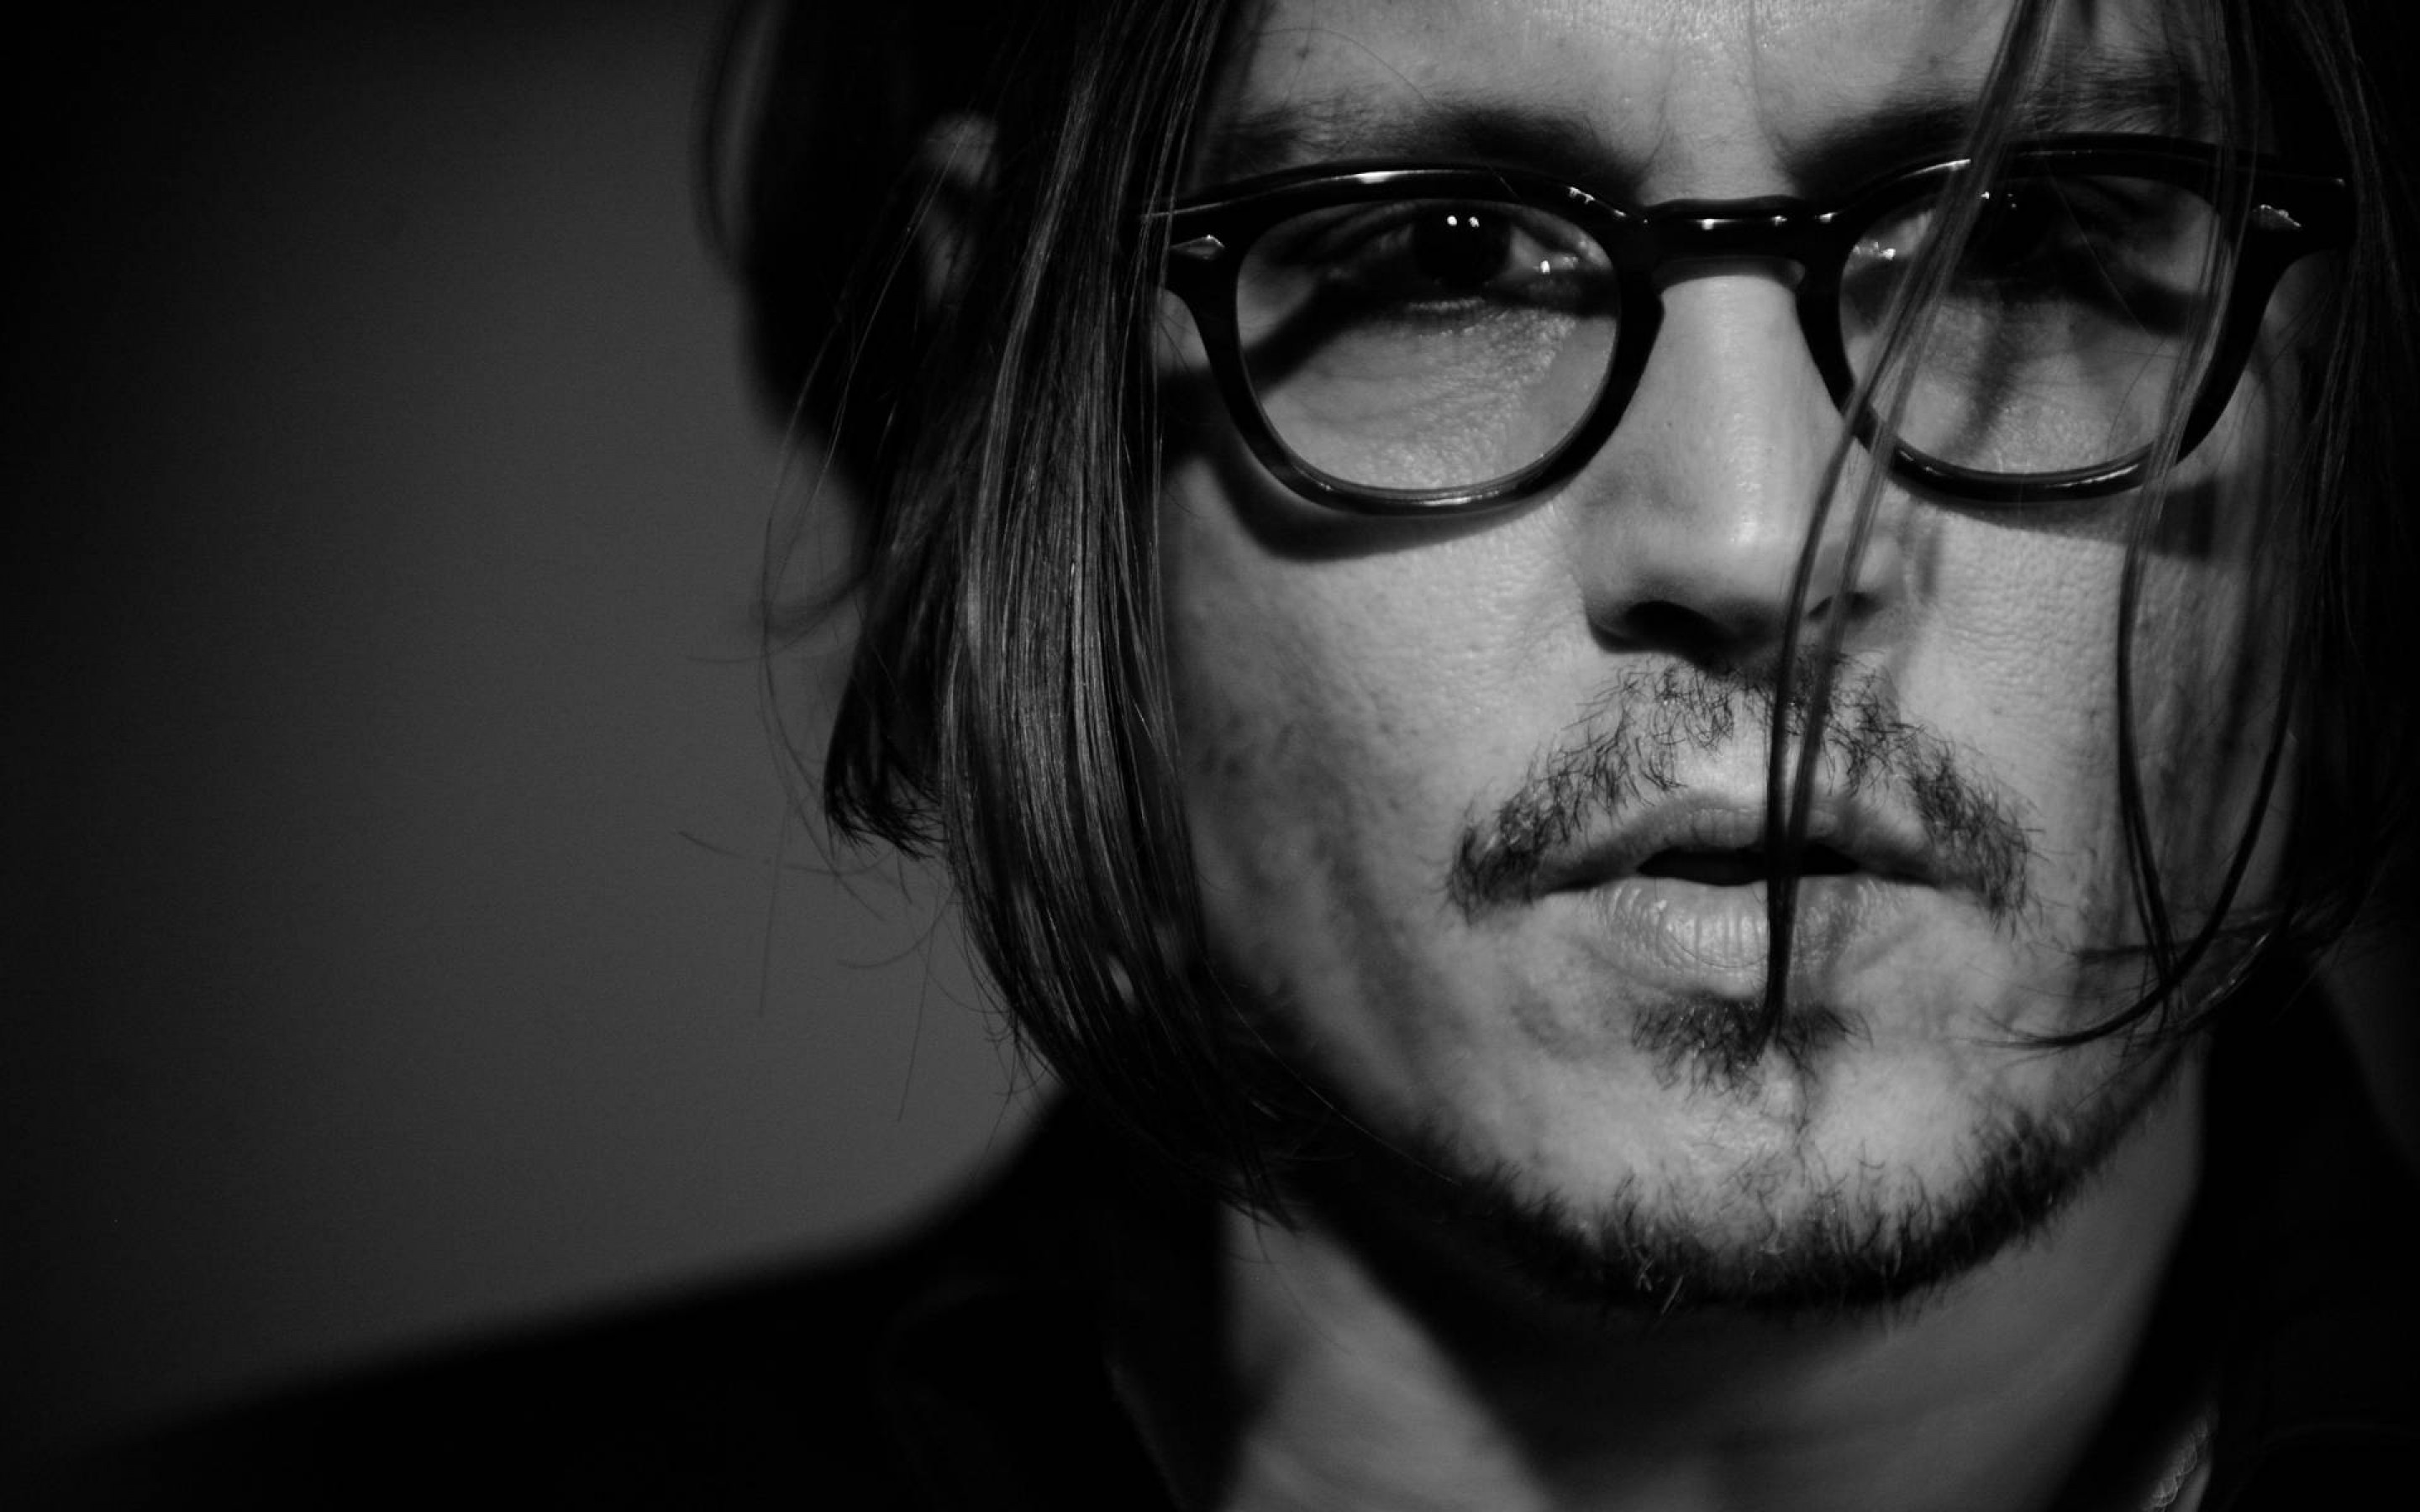 johnny-depp-wallpaper-12055-12592-hd-wallpapers